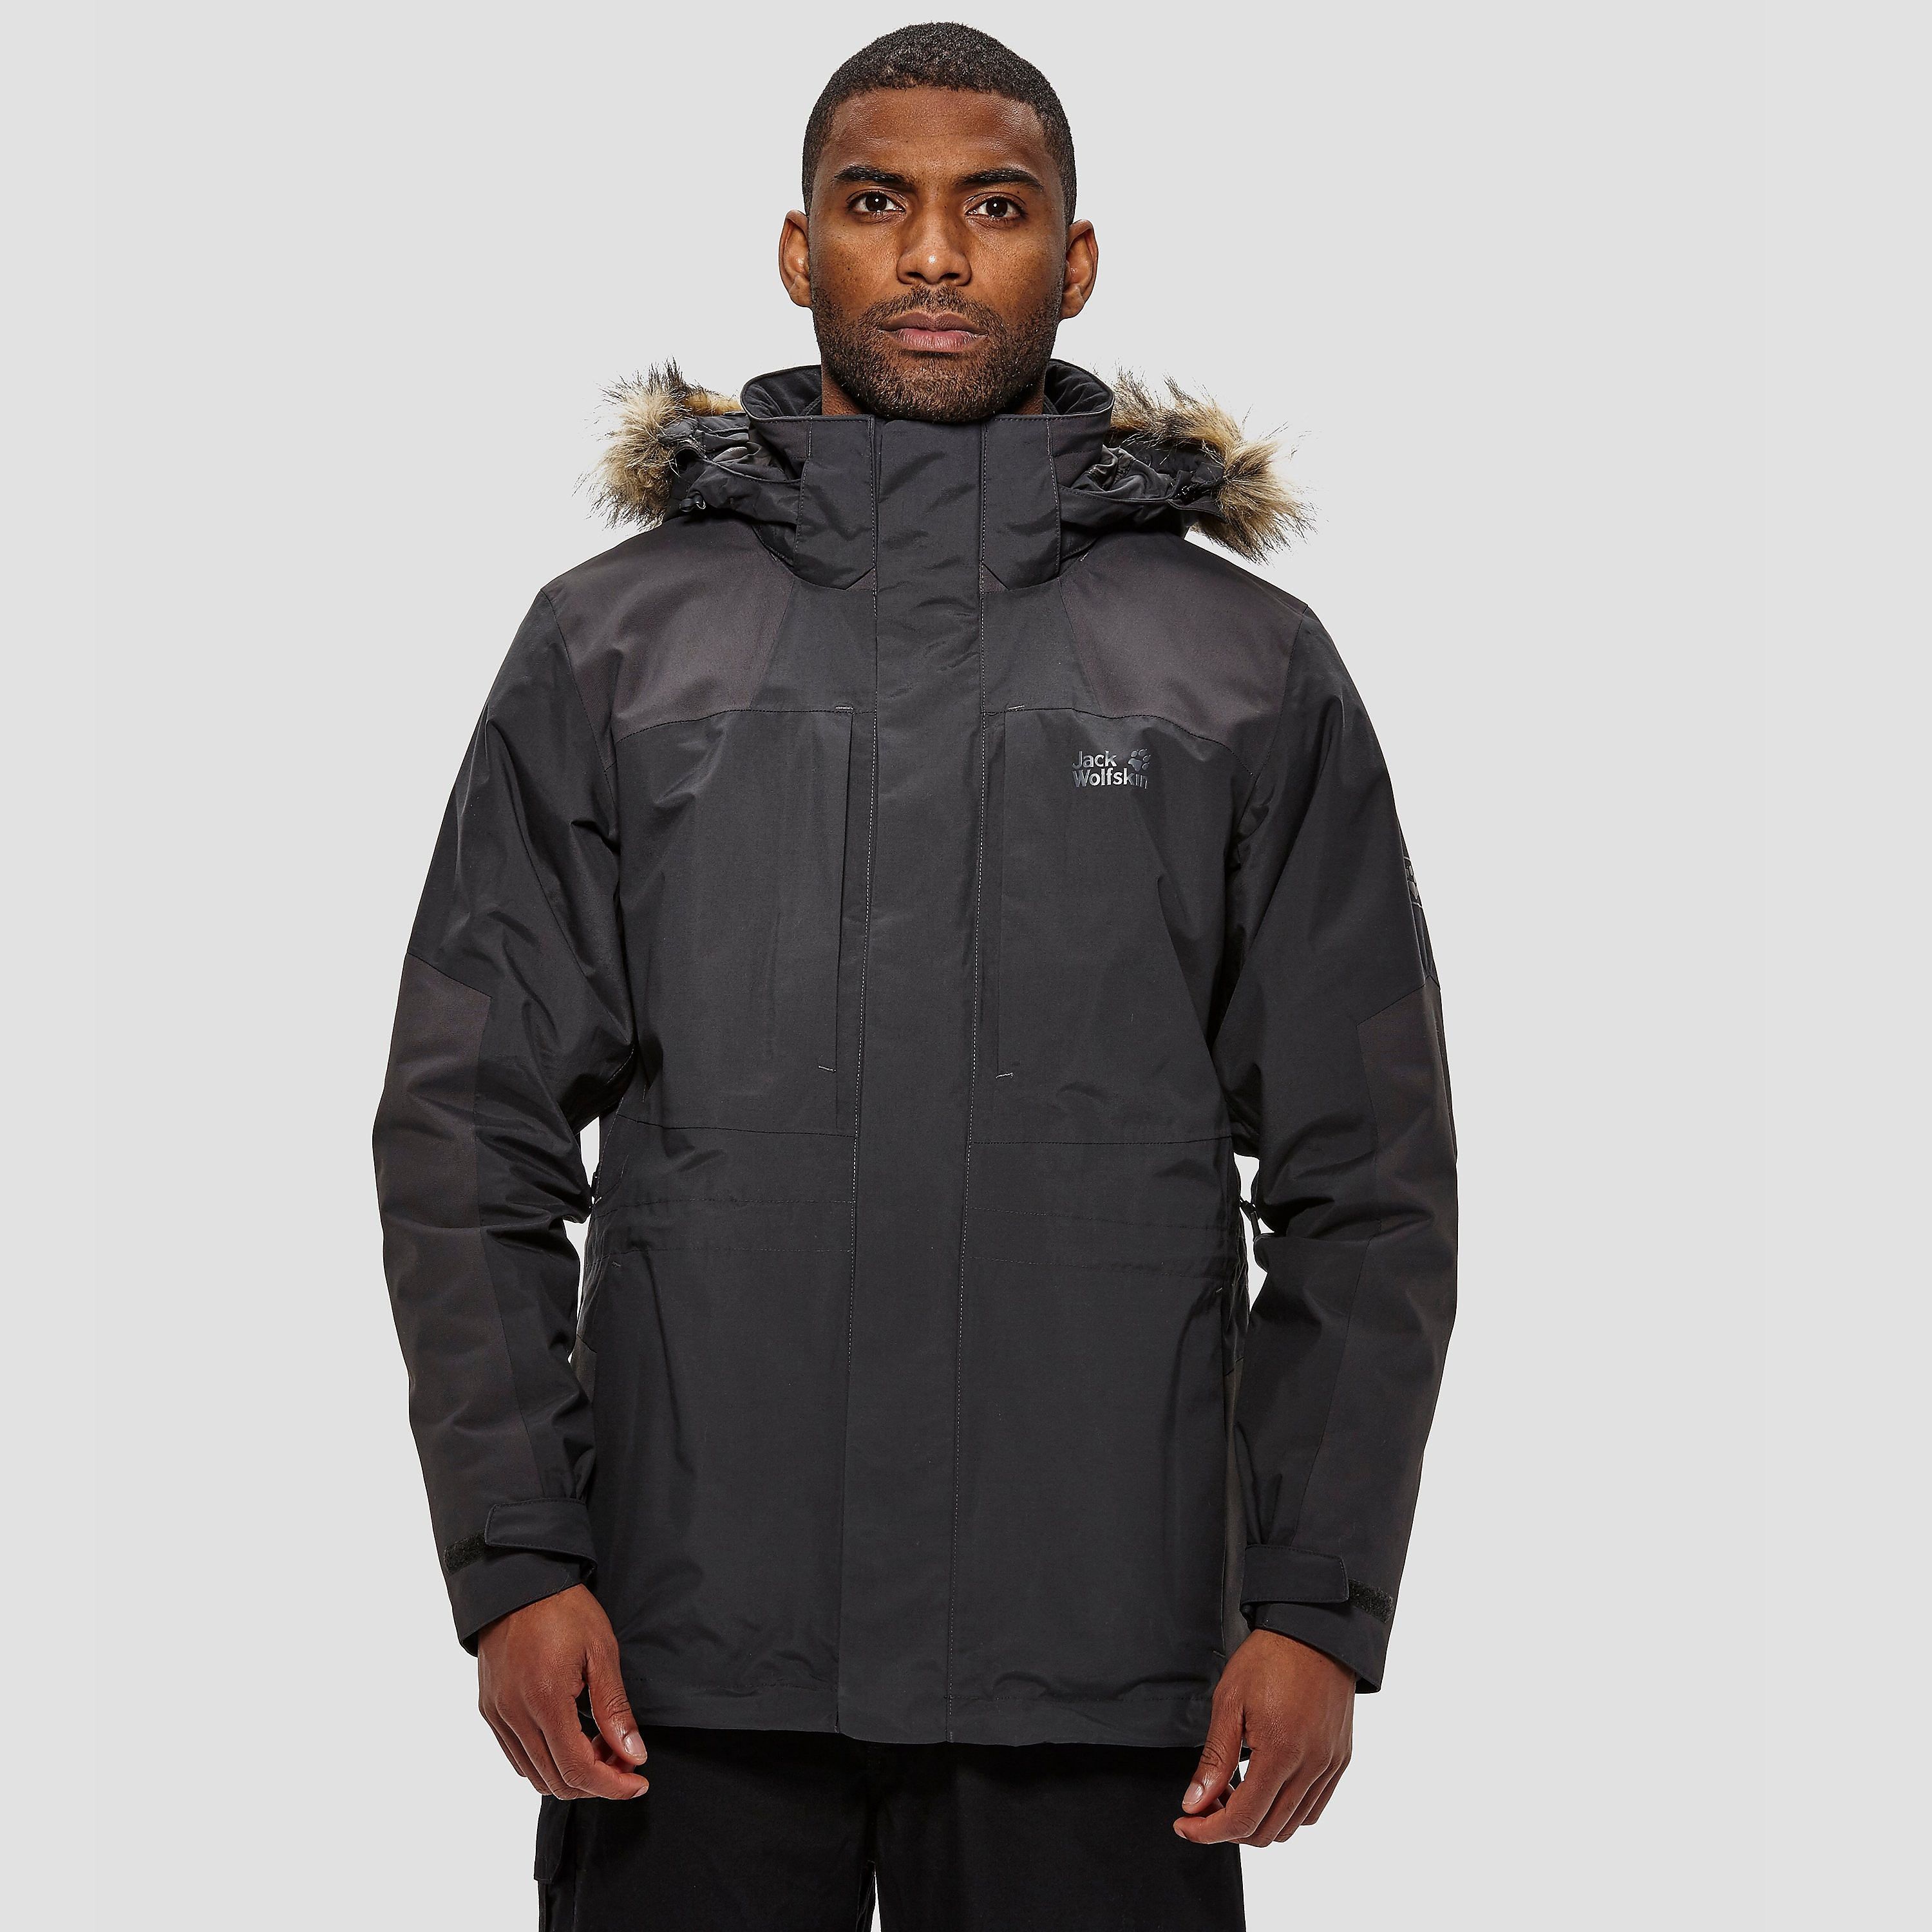 Jack Wolfskin THORVALD 3-in-1 Men's Jacket